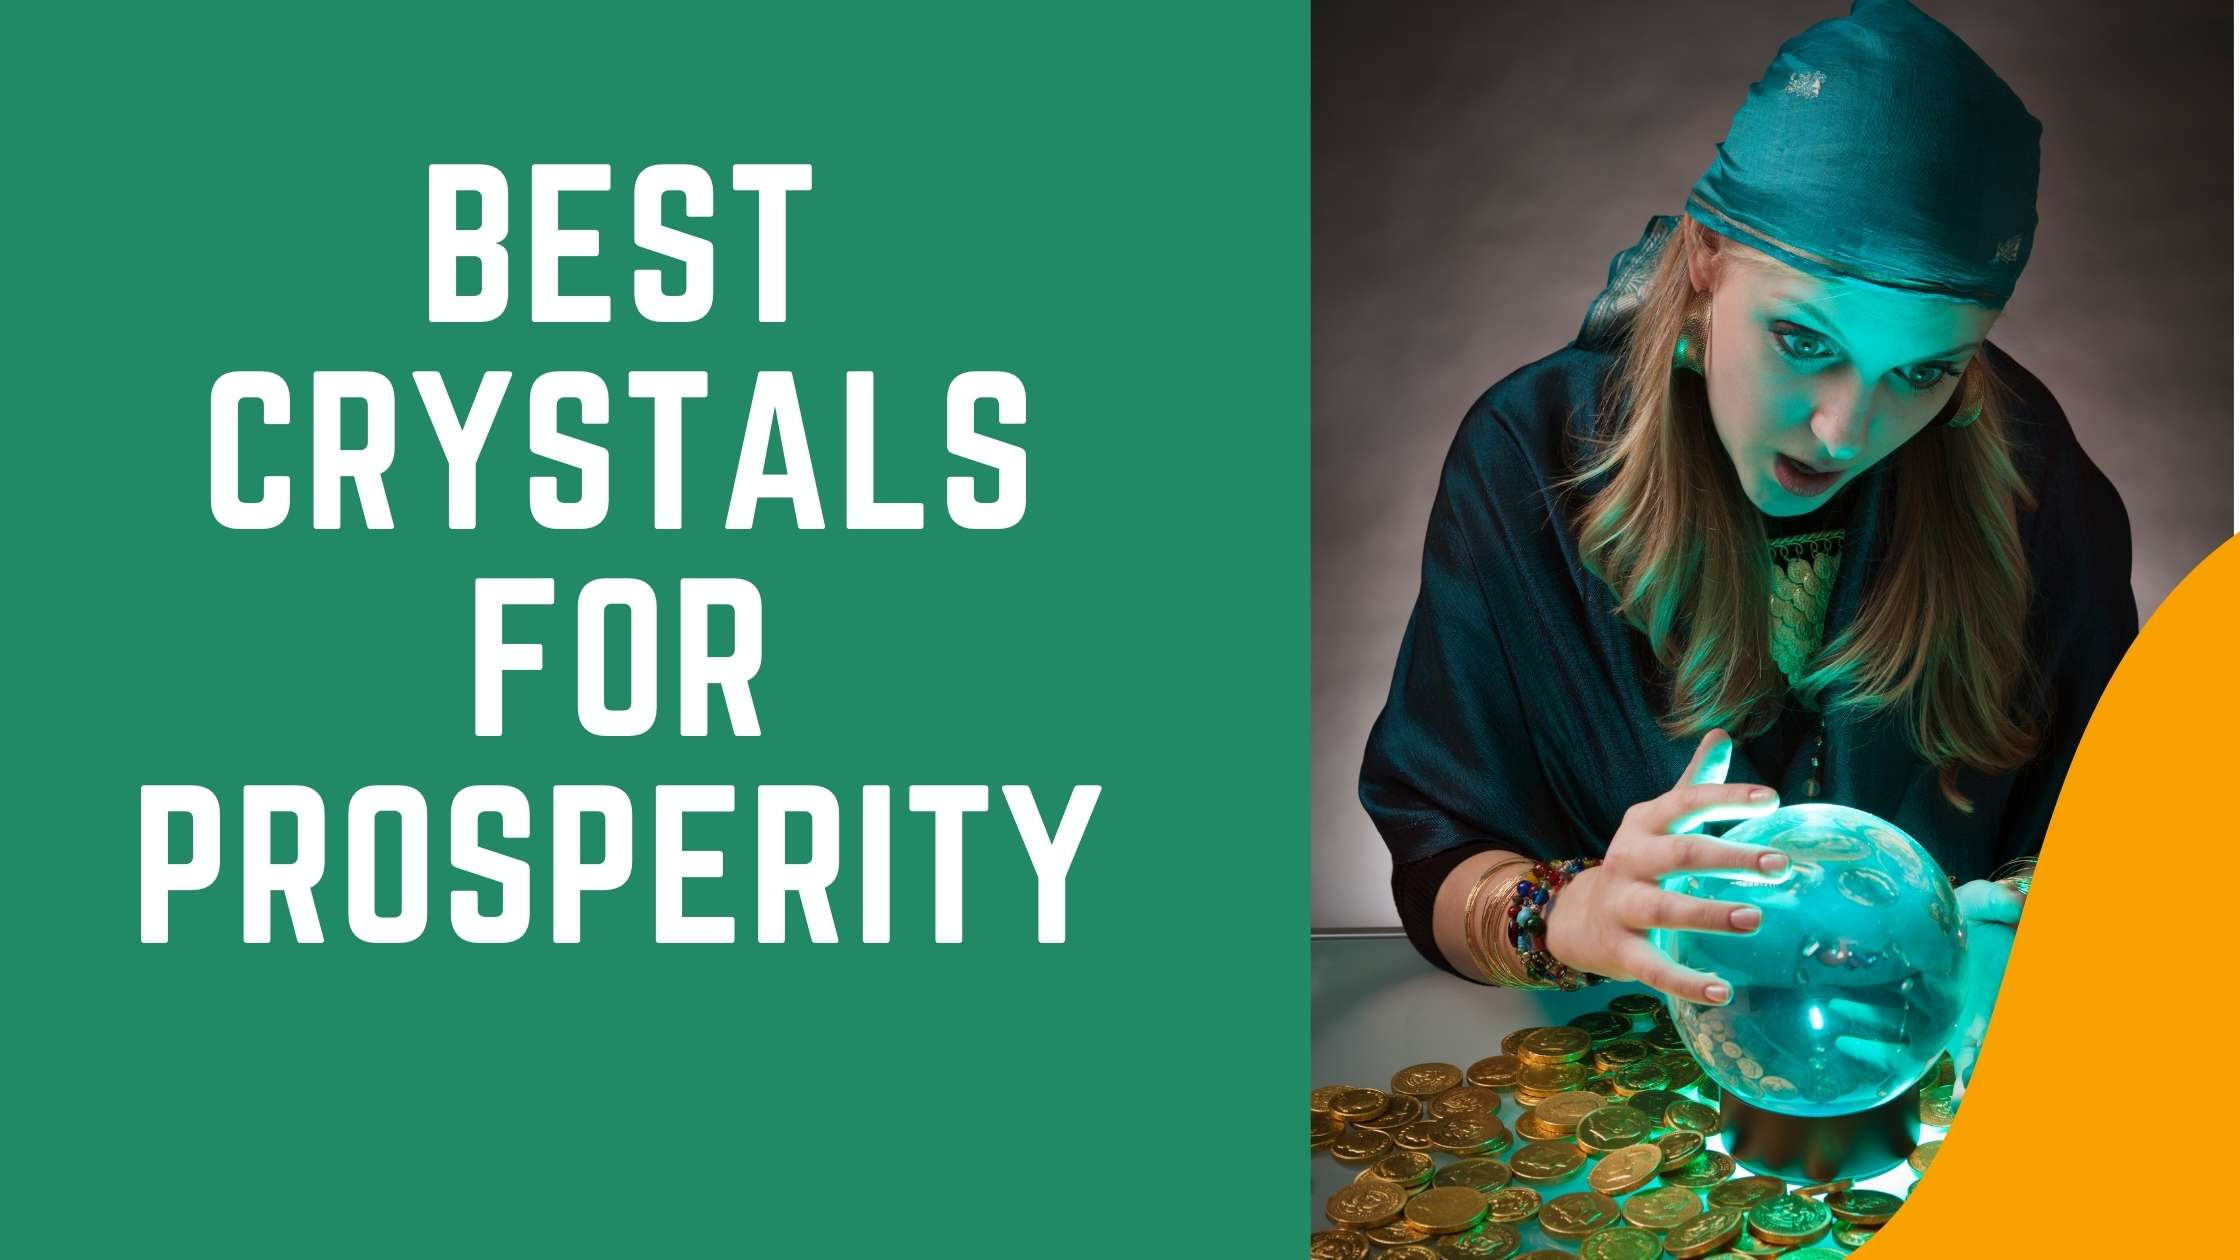 Best Crystals for Prosperity